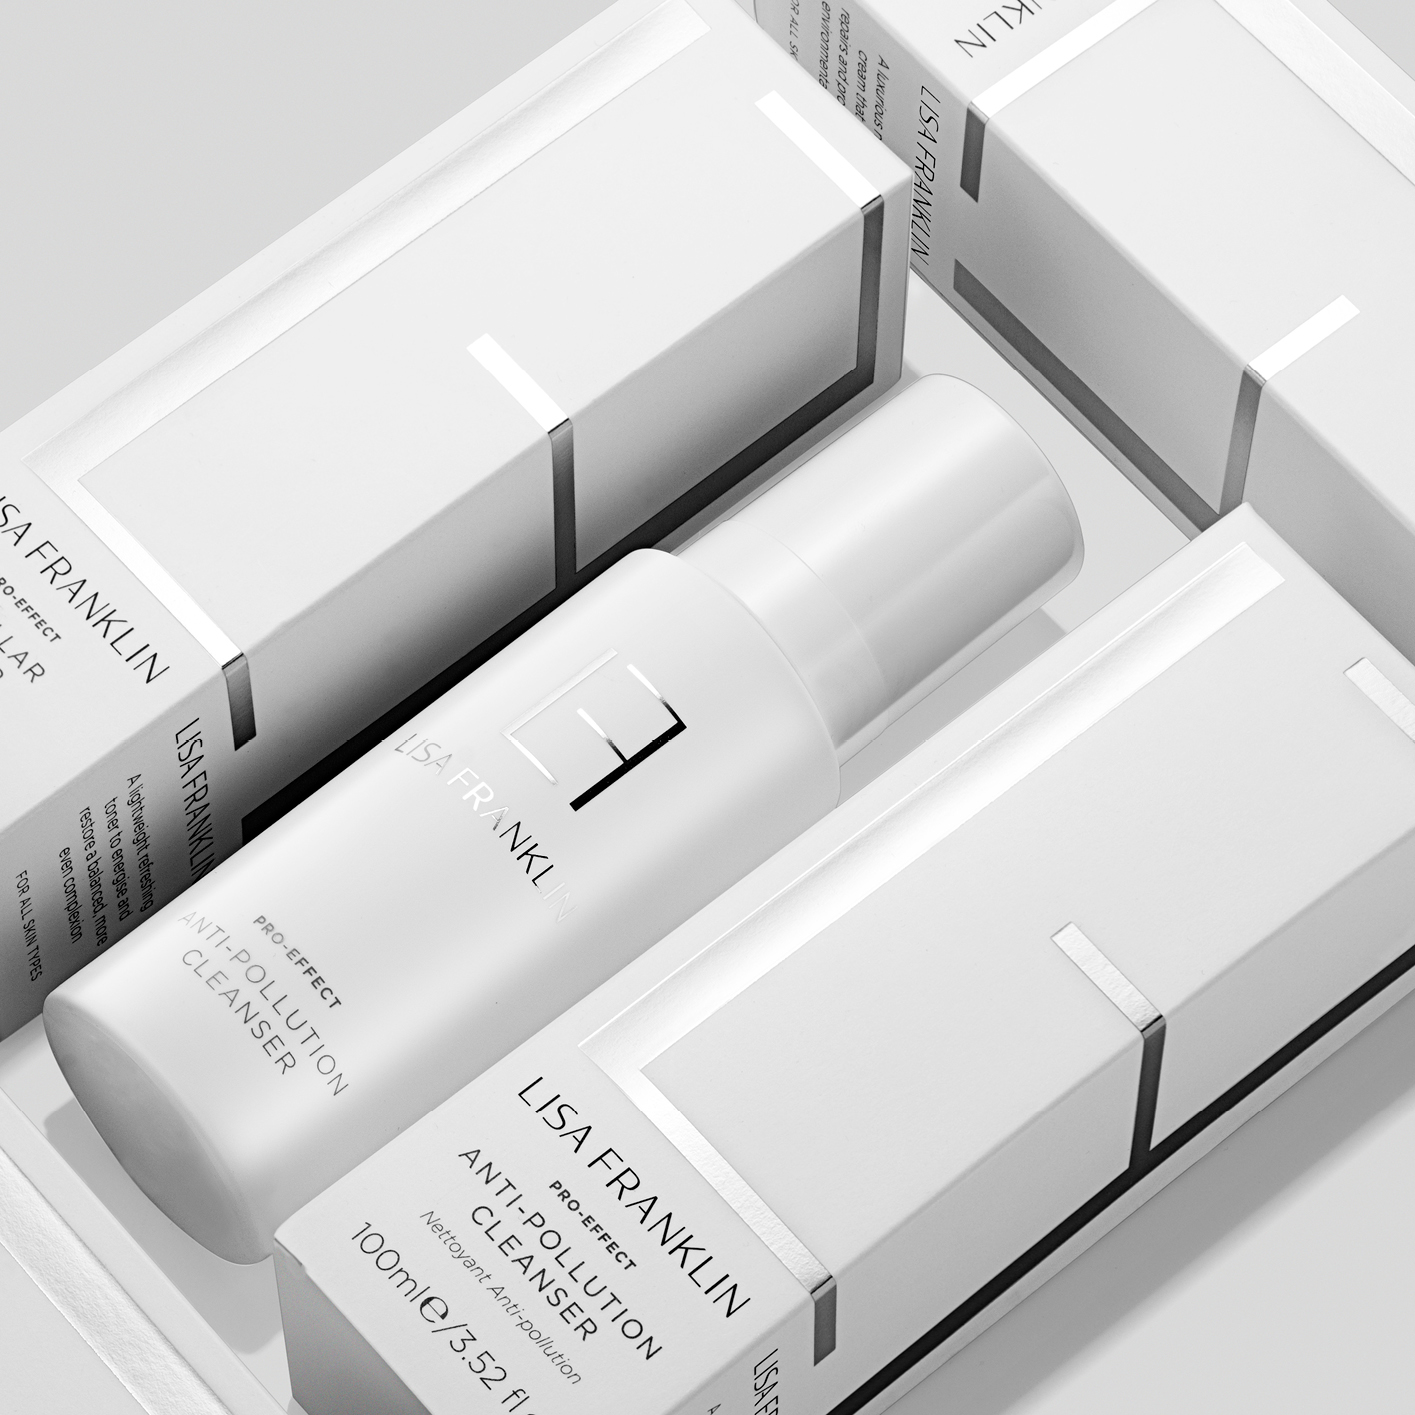 Lisa Franklin's skincare range is targeted at combatting the negative effects of pollution